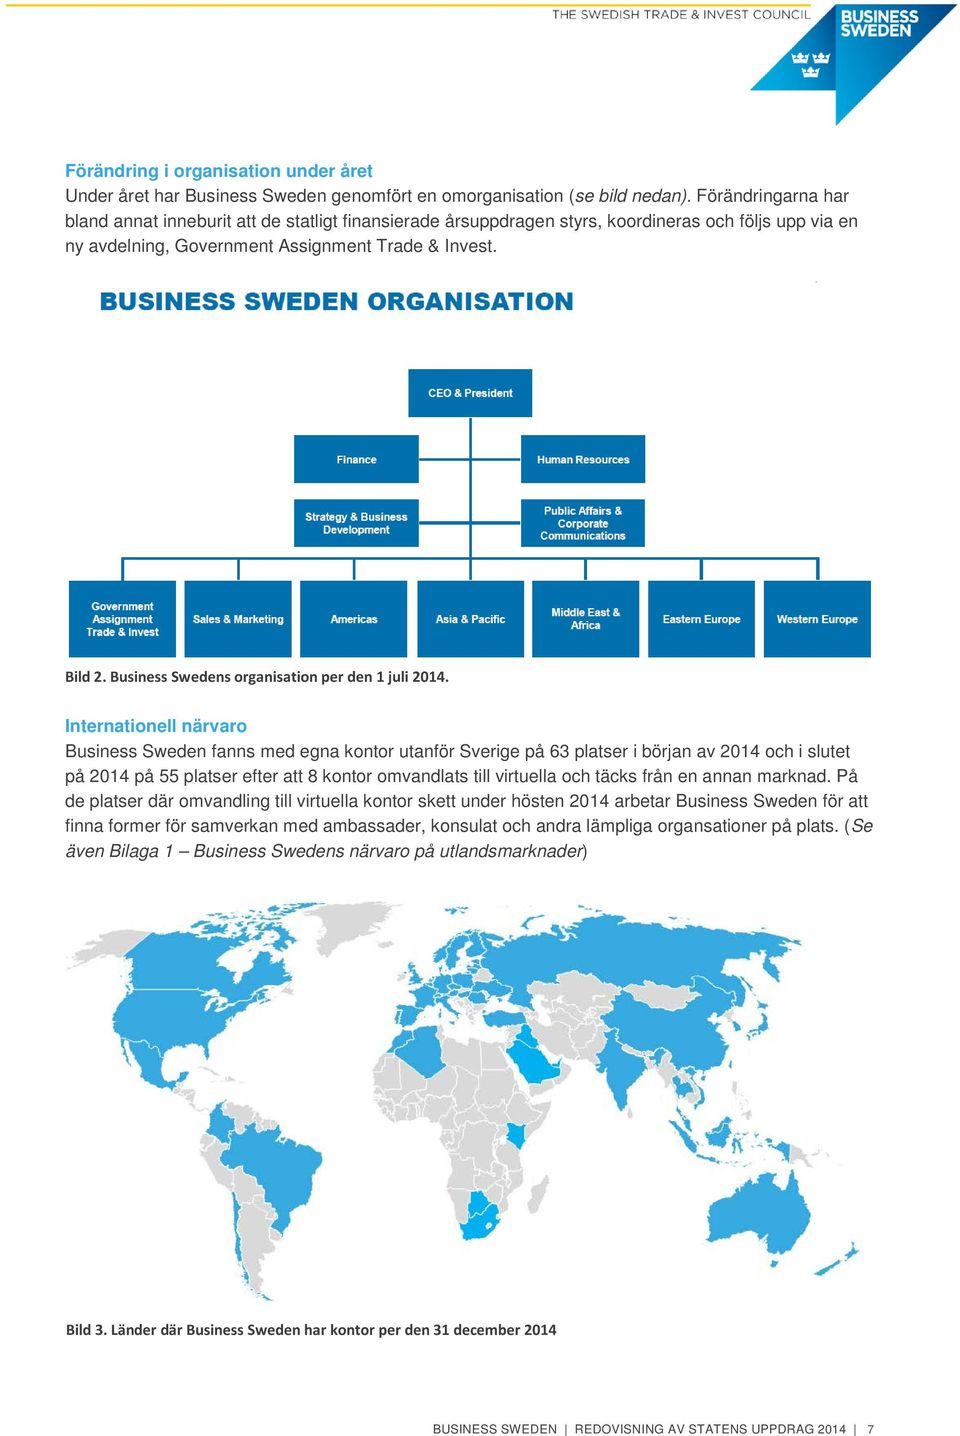 Business Swedens organisation per den 1 juli 2014.